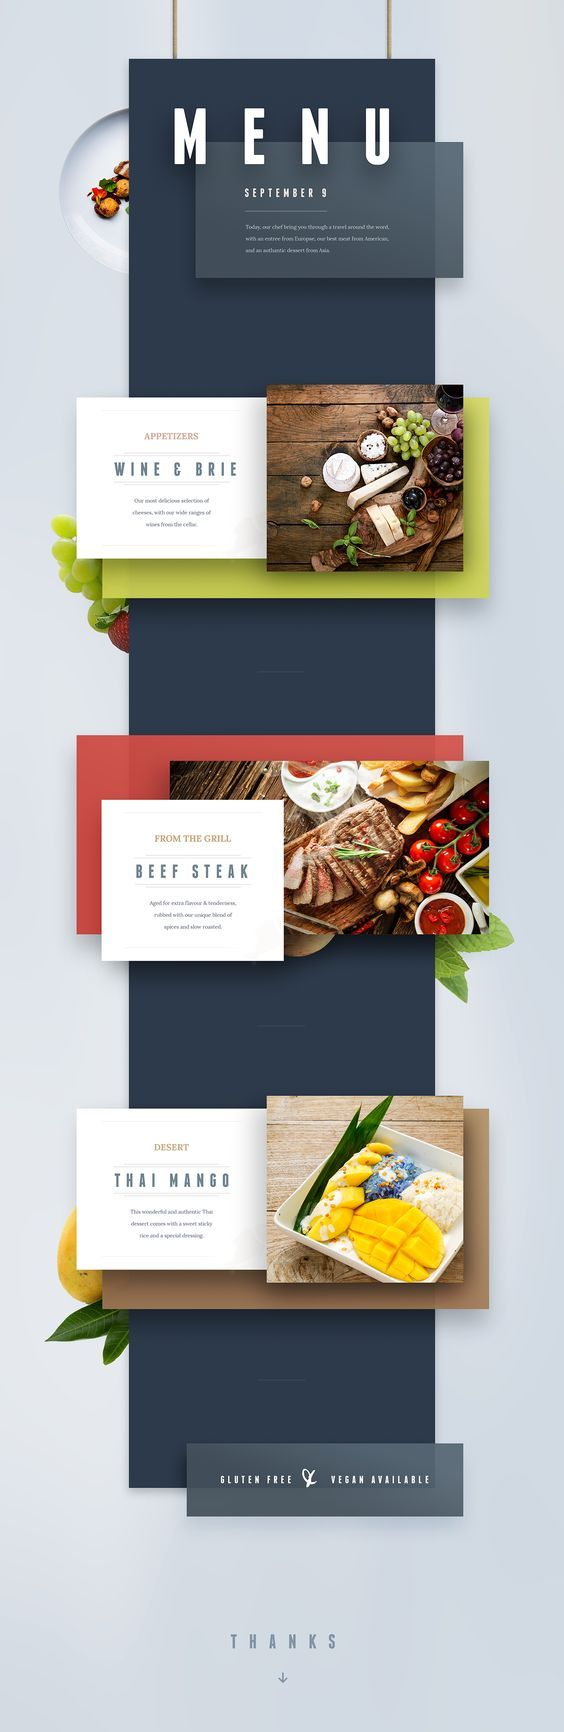 restaurant menu online inspiration #web #design